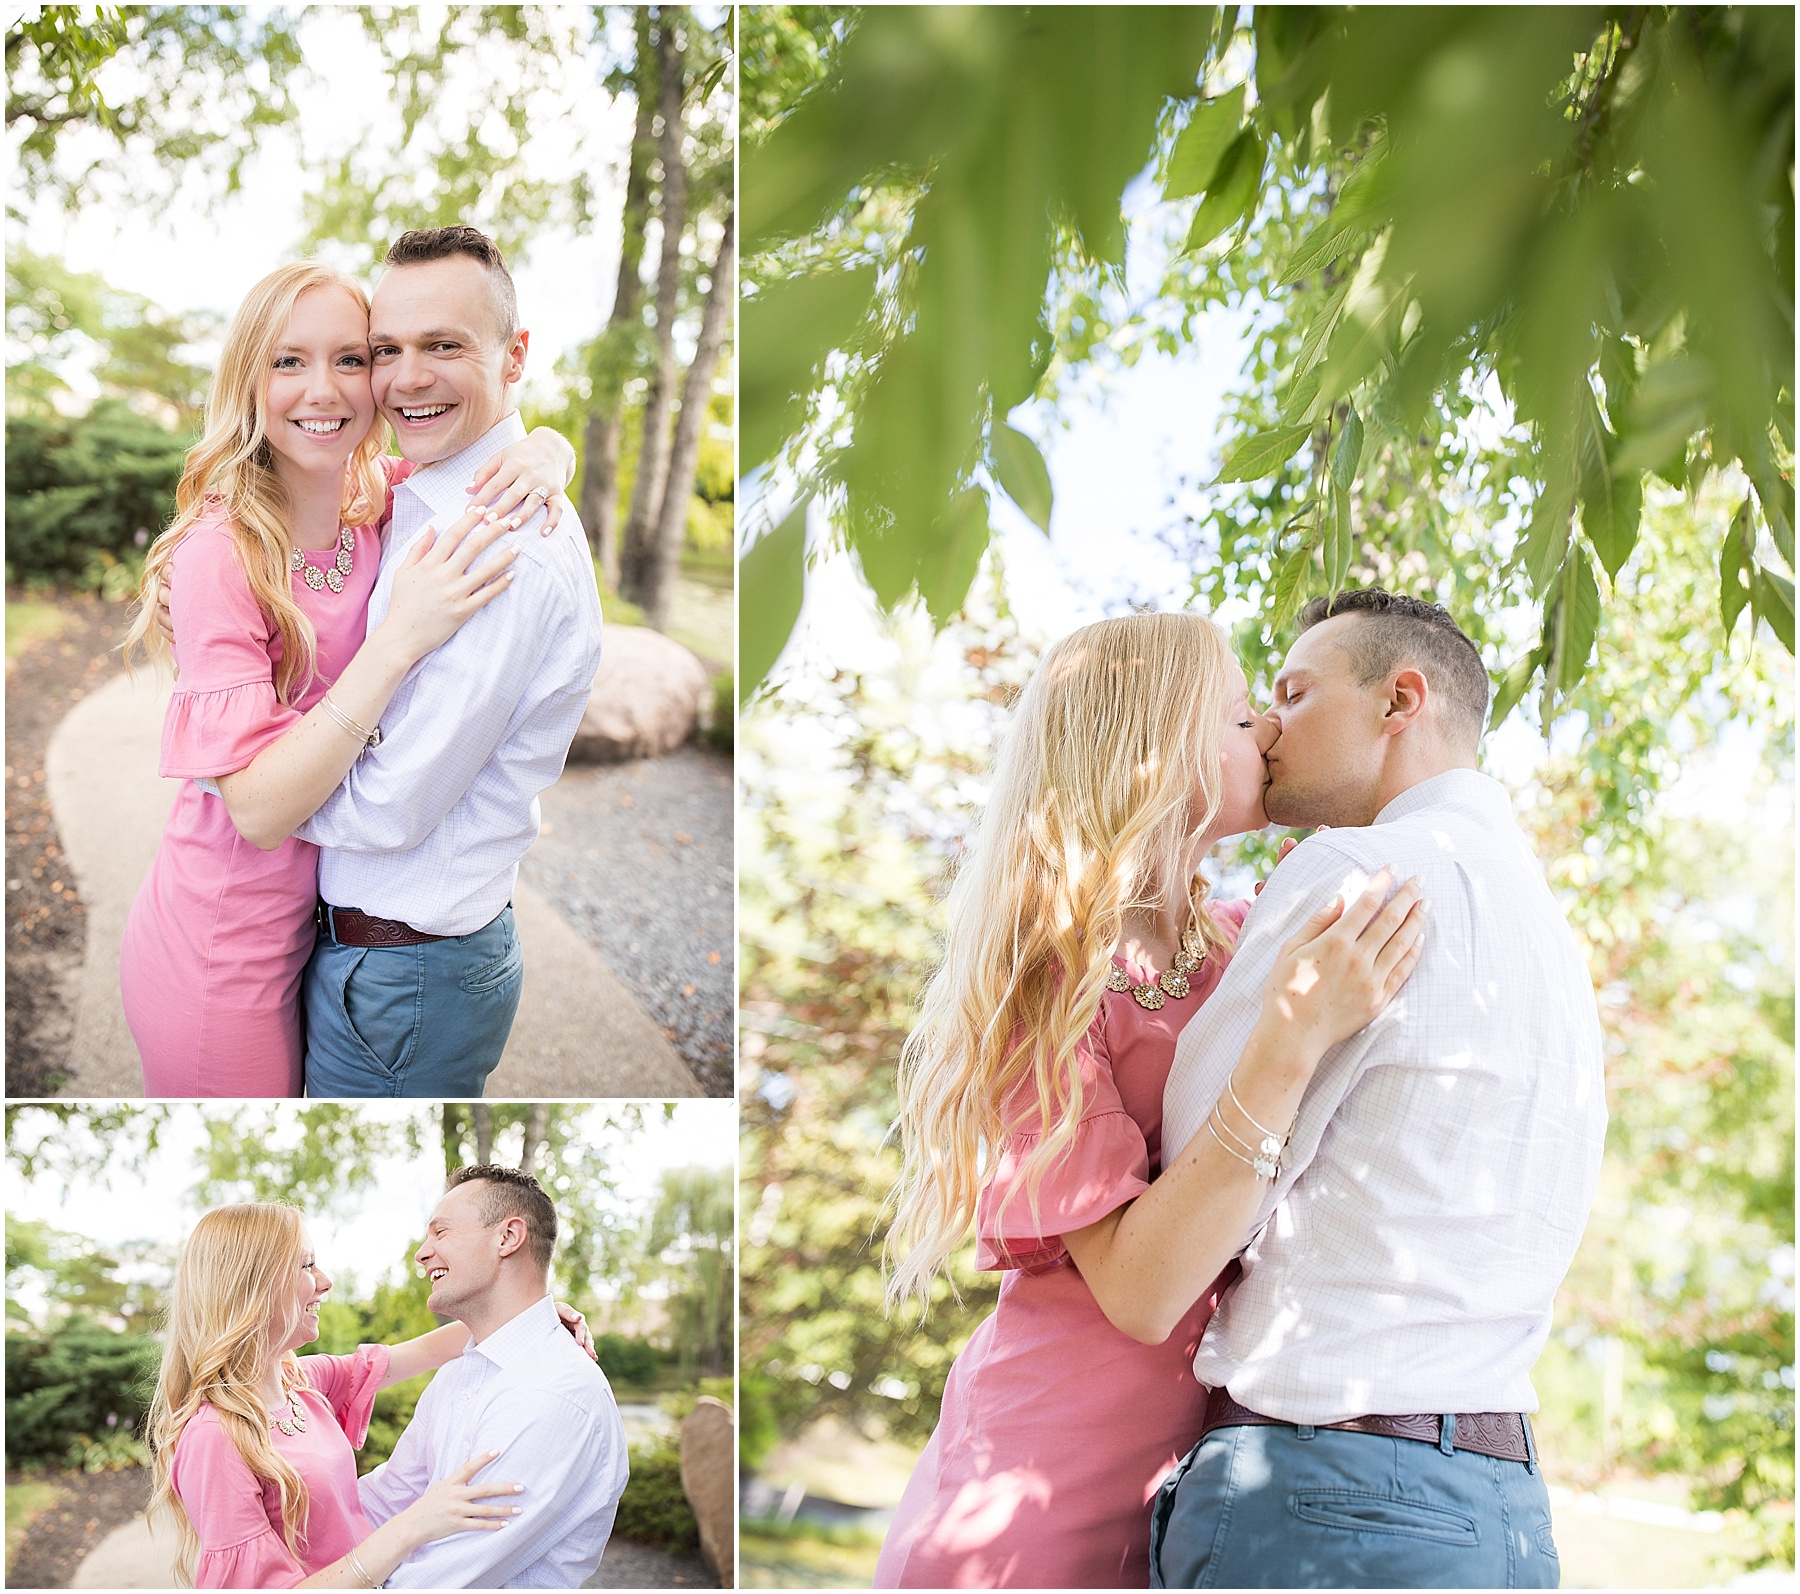 Soon to be husband and wife holding each other close under a tree, Indianapolis Engagement Photographer